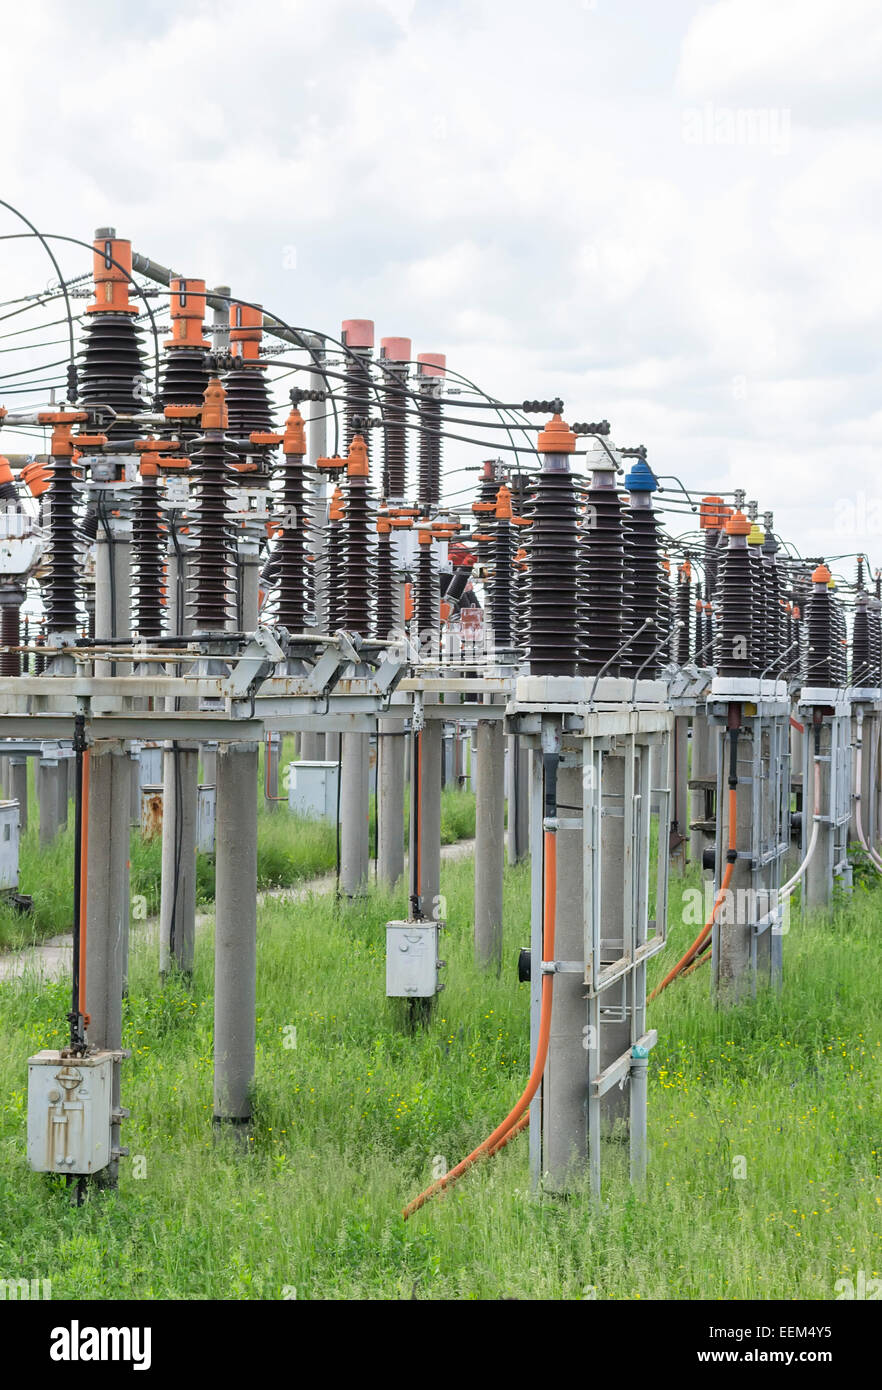 Small and medium power electric coils array at an electric transformation station - Stock Image